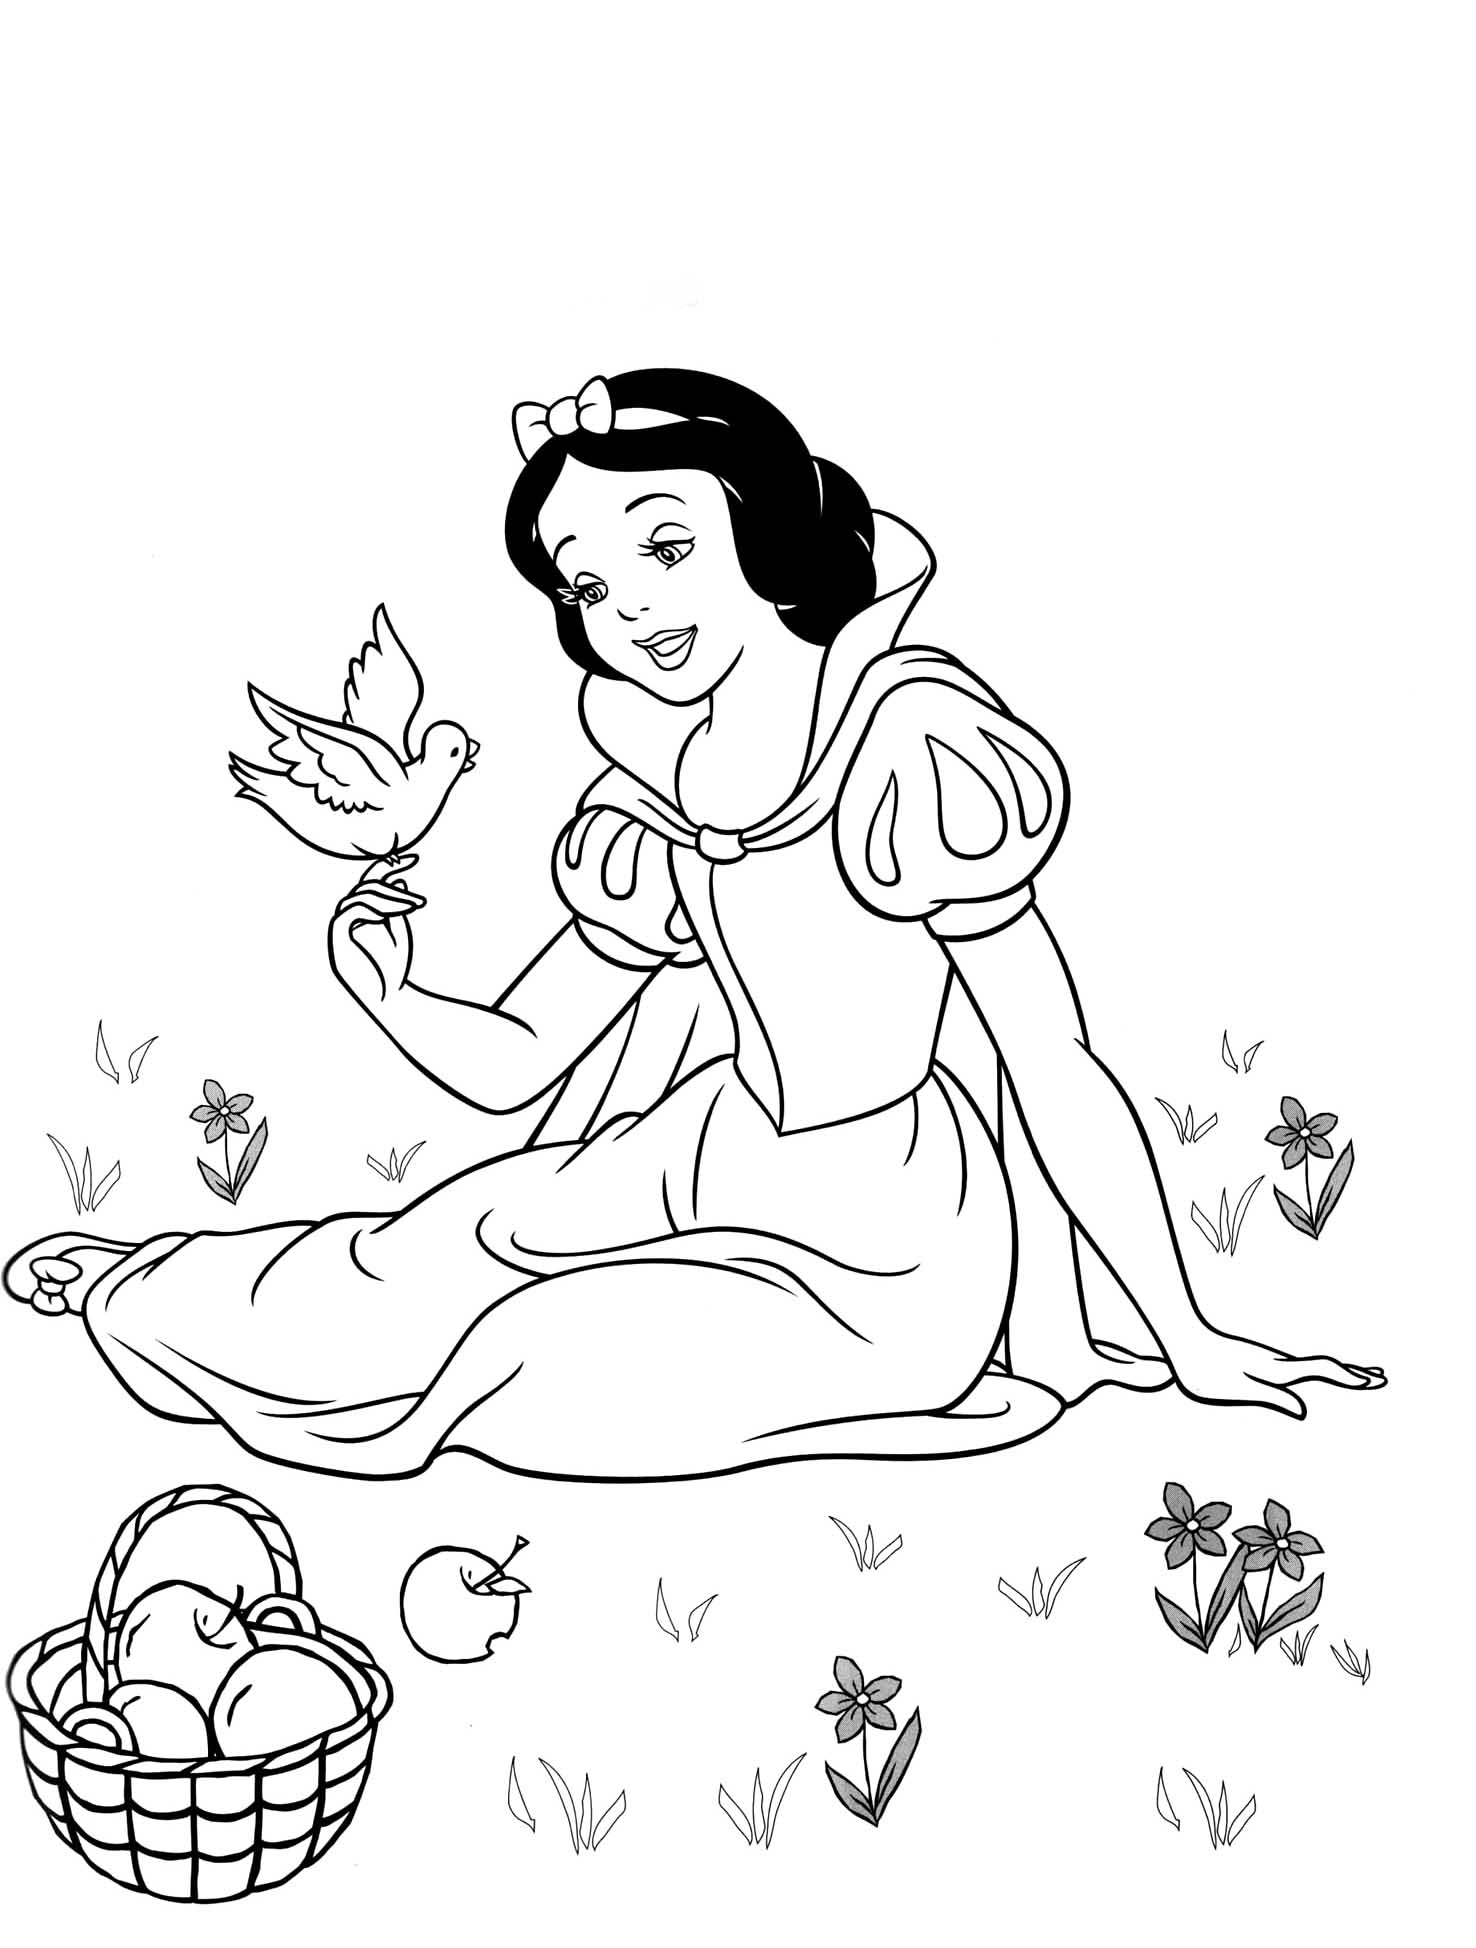 free snow white coloring pages snow white coloring pages best coloring pages for kids snow pages white coloring free